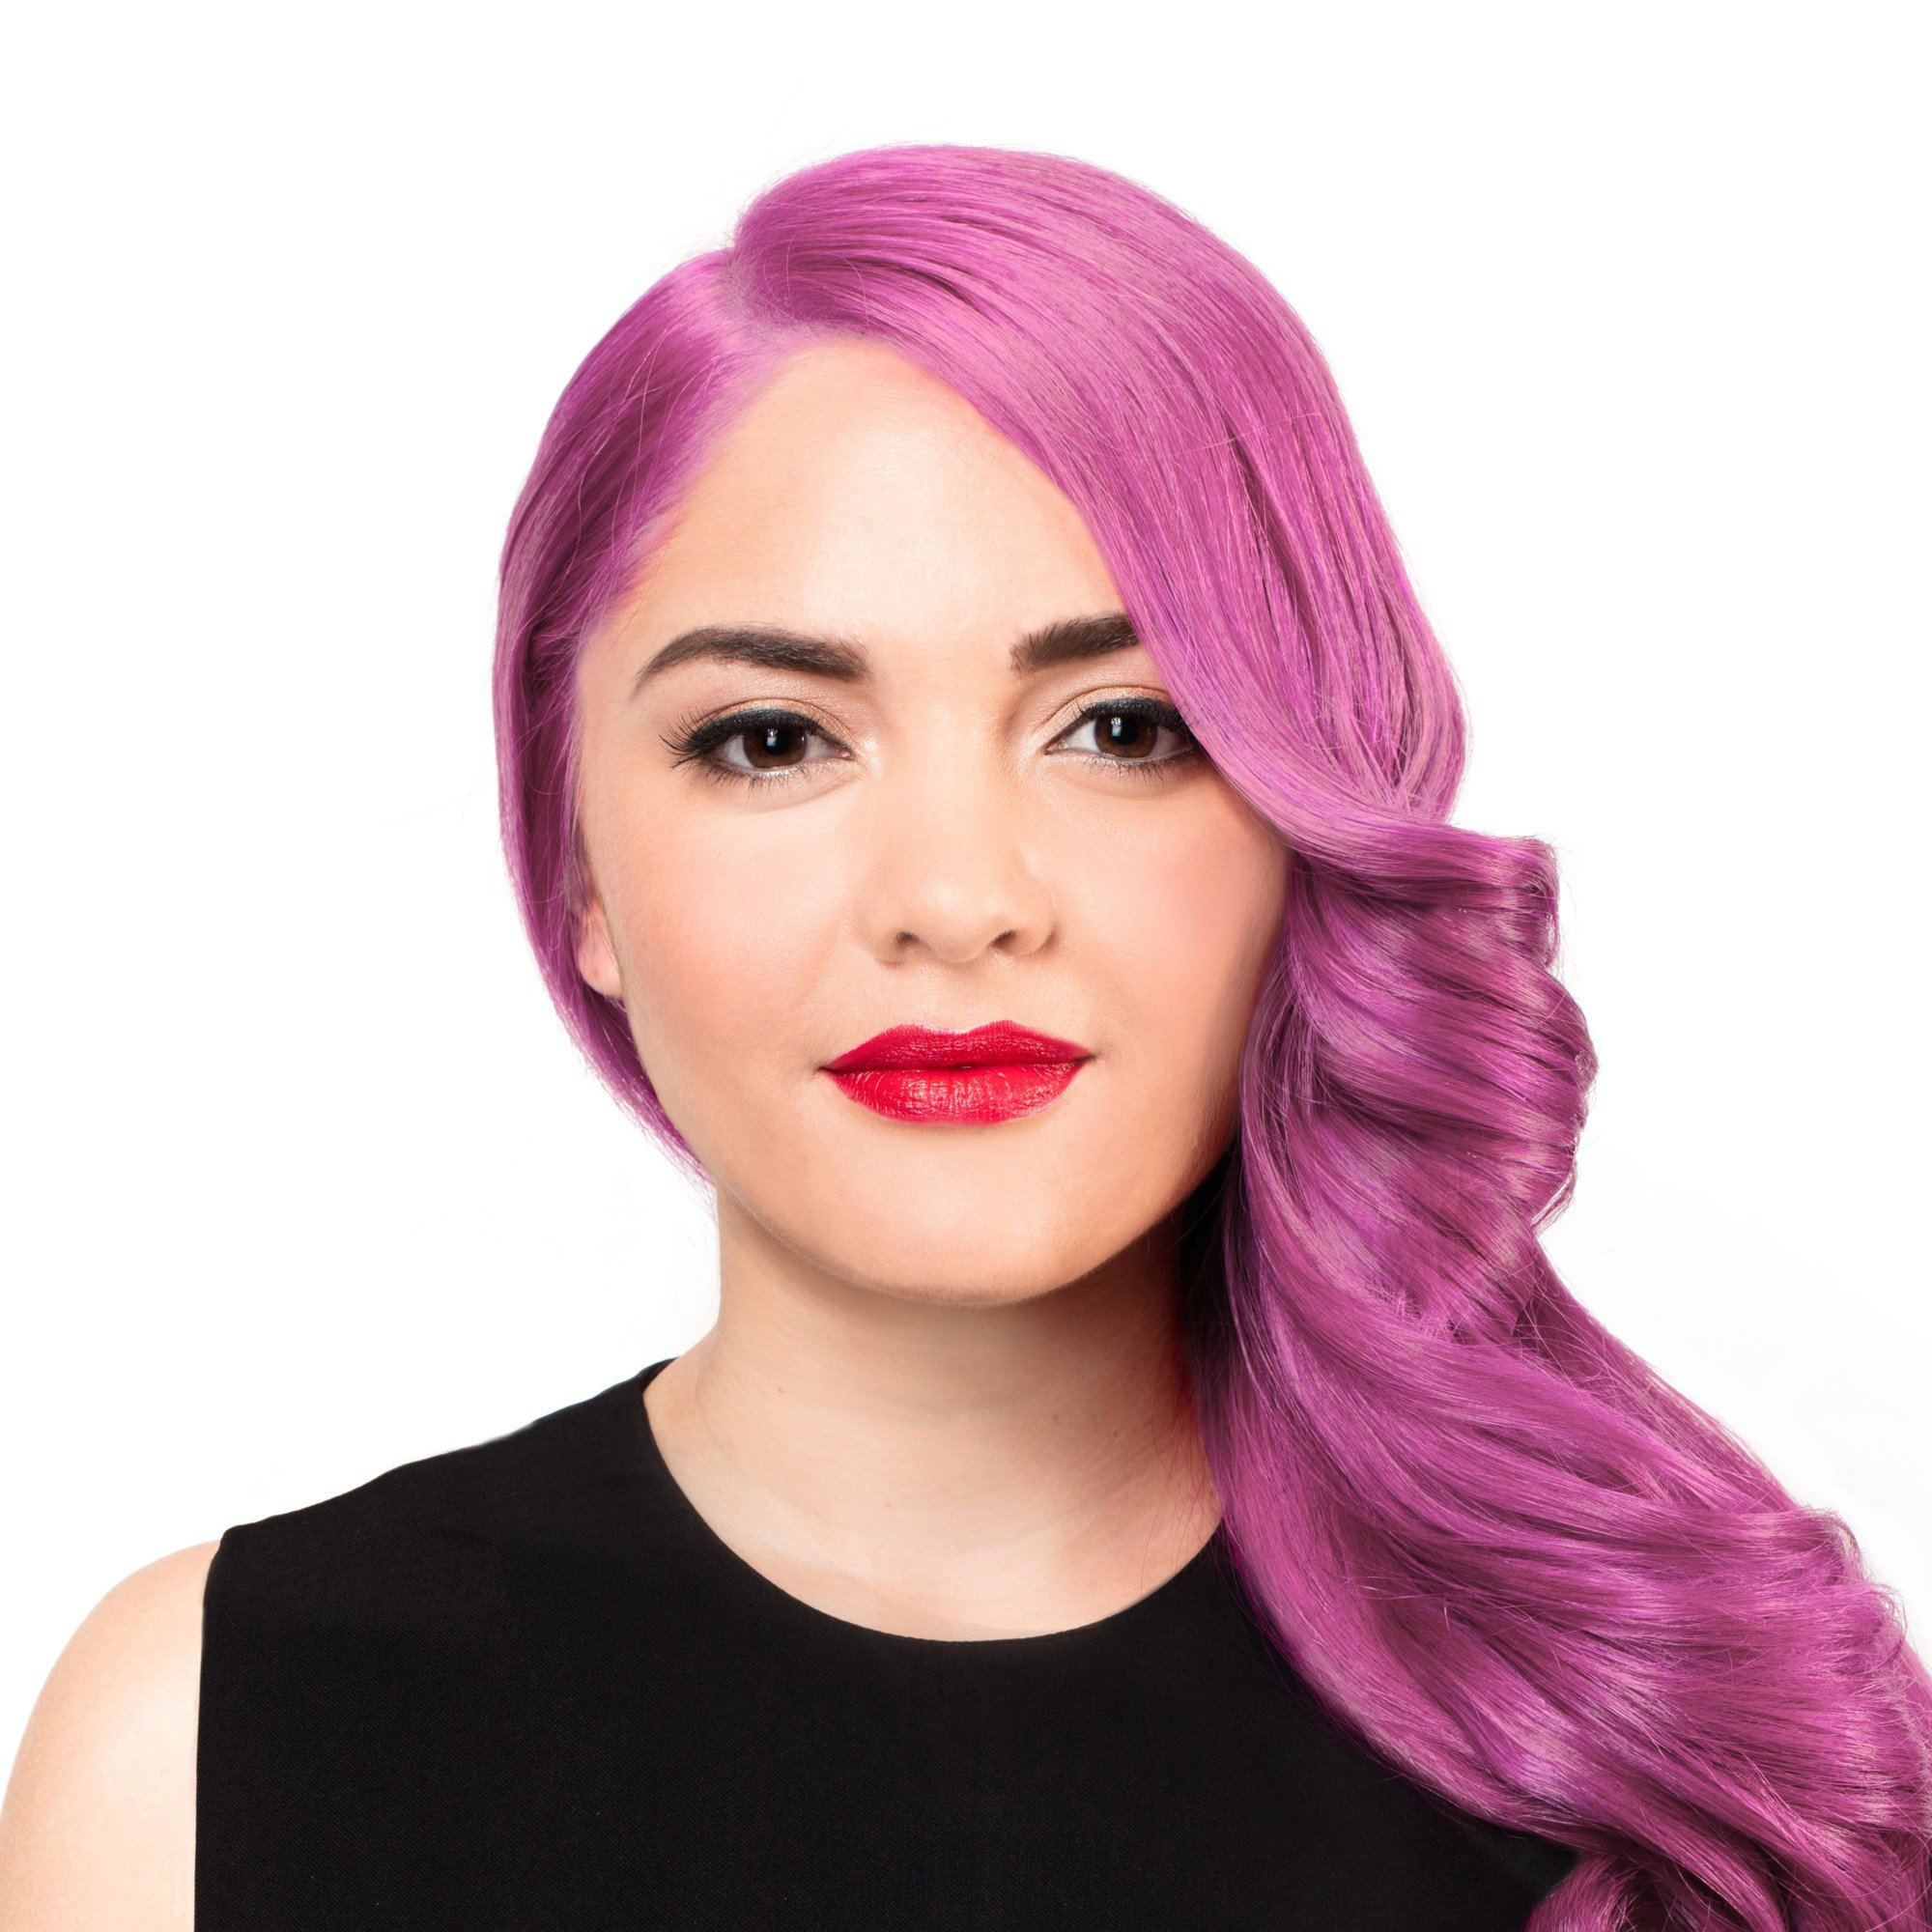 New Sparks Long Lasting Bright Hair Color Creme Rinse Semi Ideas With Pictures